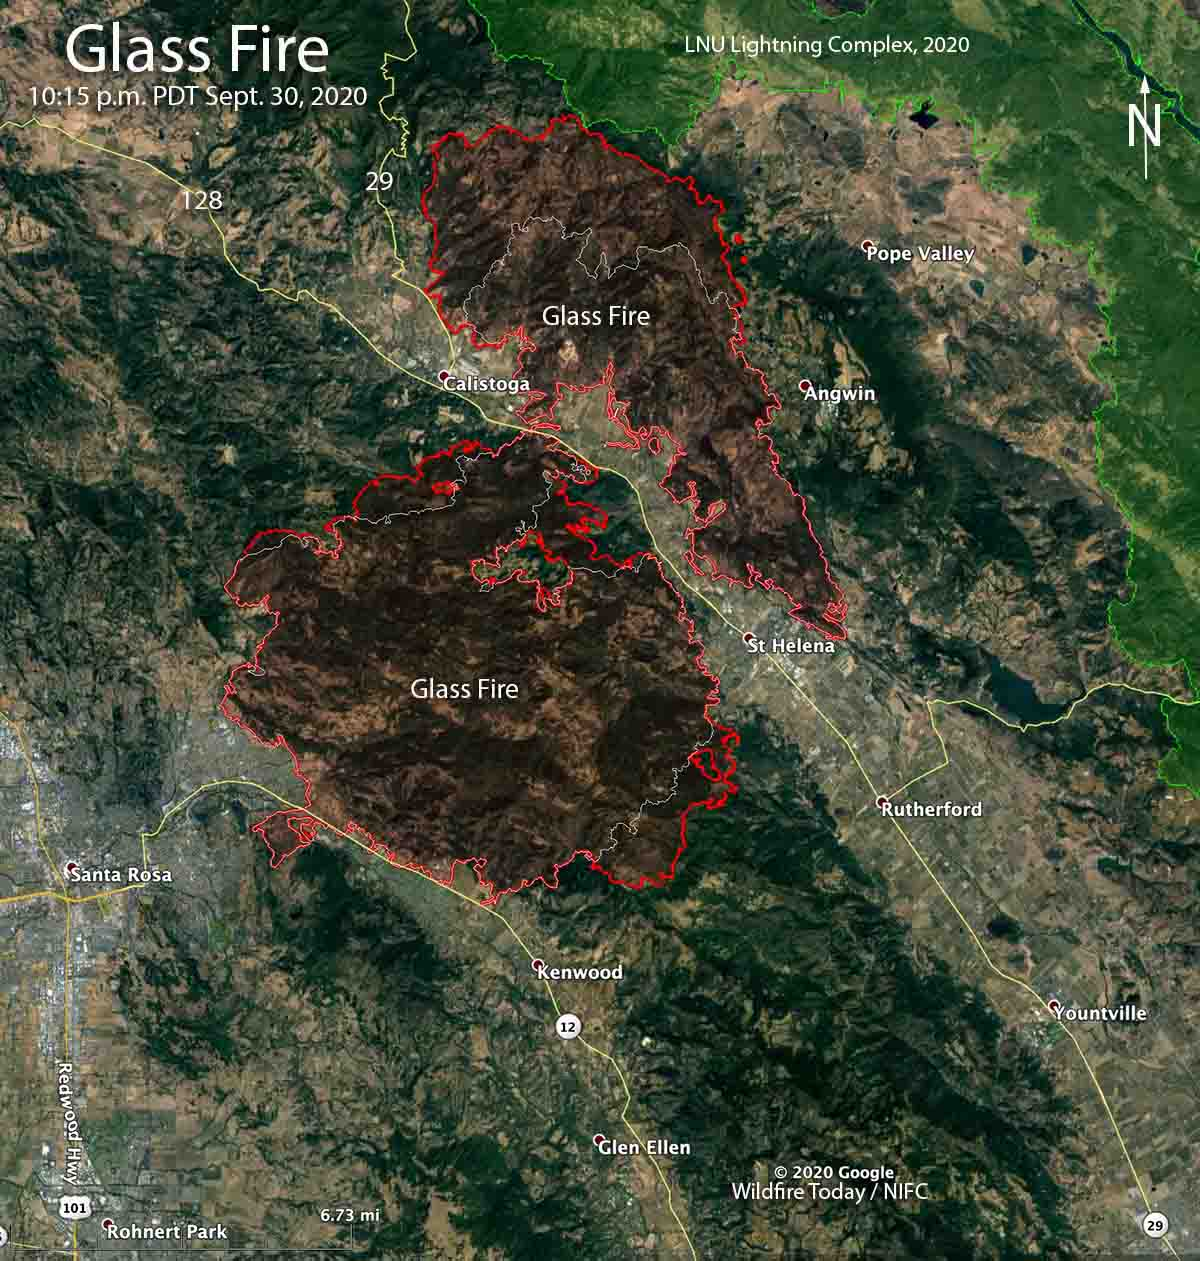 Map of the Glass Fire at 10:15 p.m. PDT Sept. 30, 2020